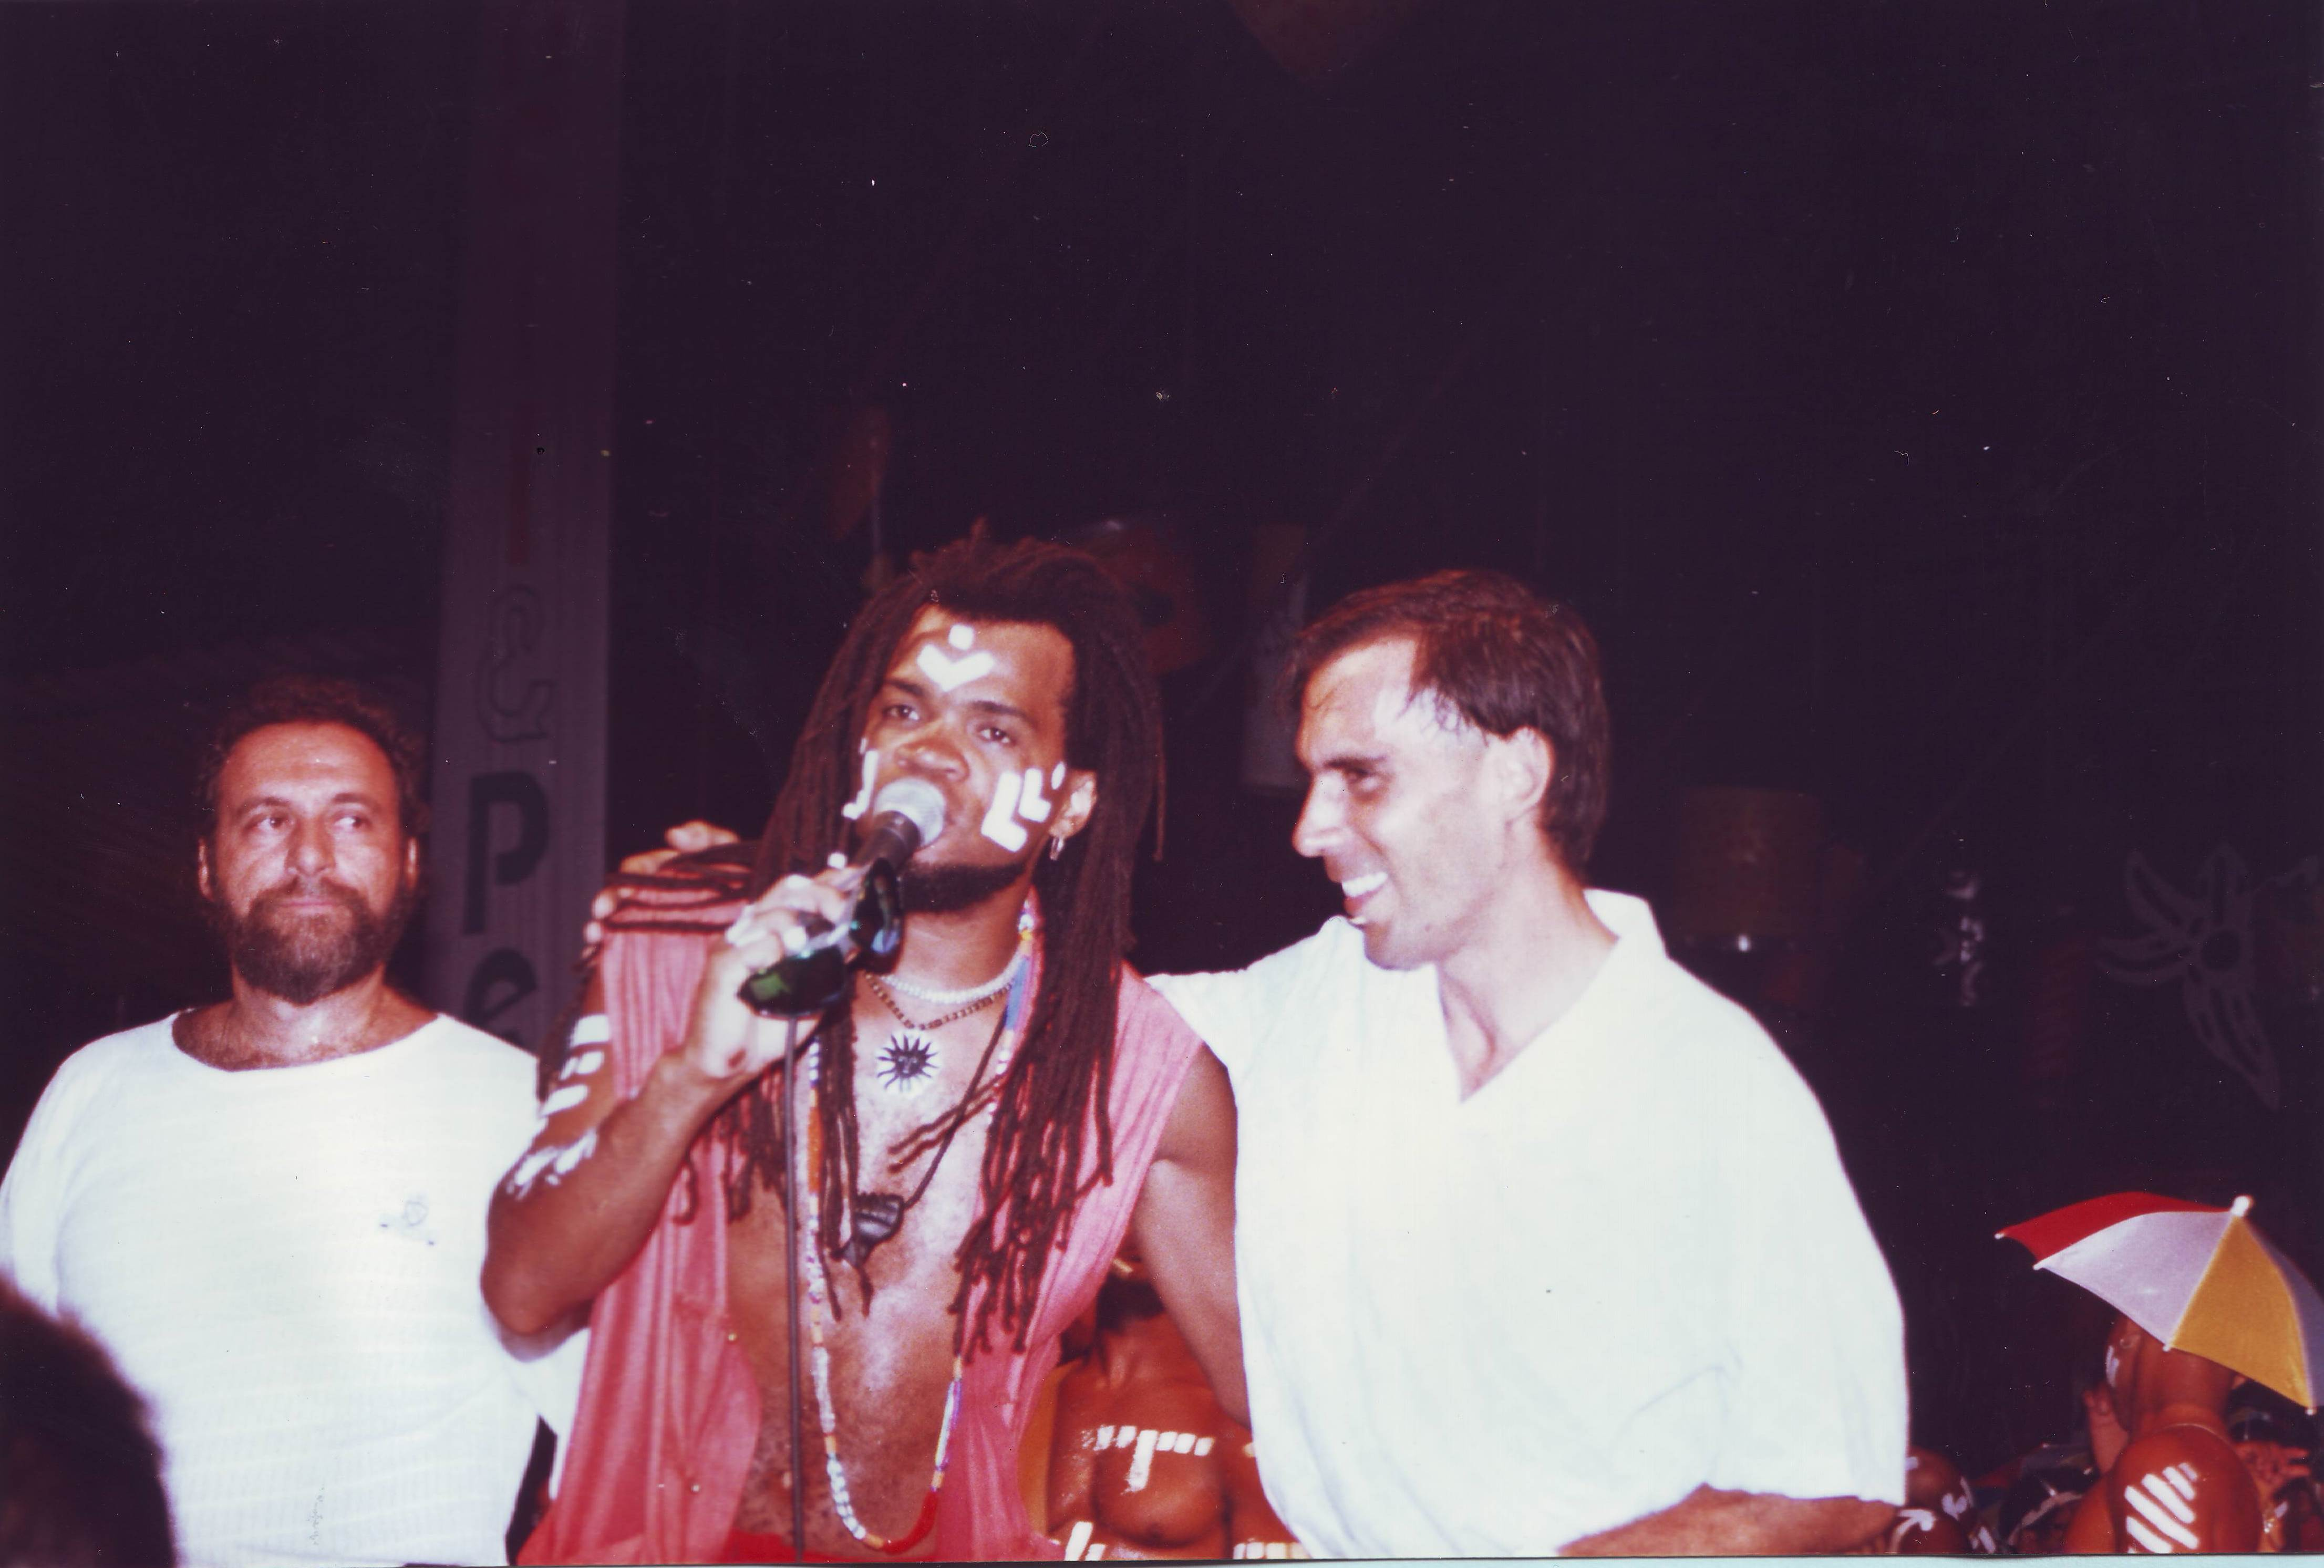 Carlinhos Brown e Arnaldo Antunes